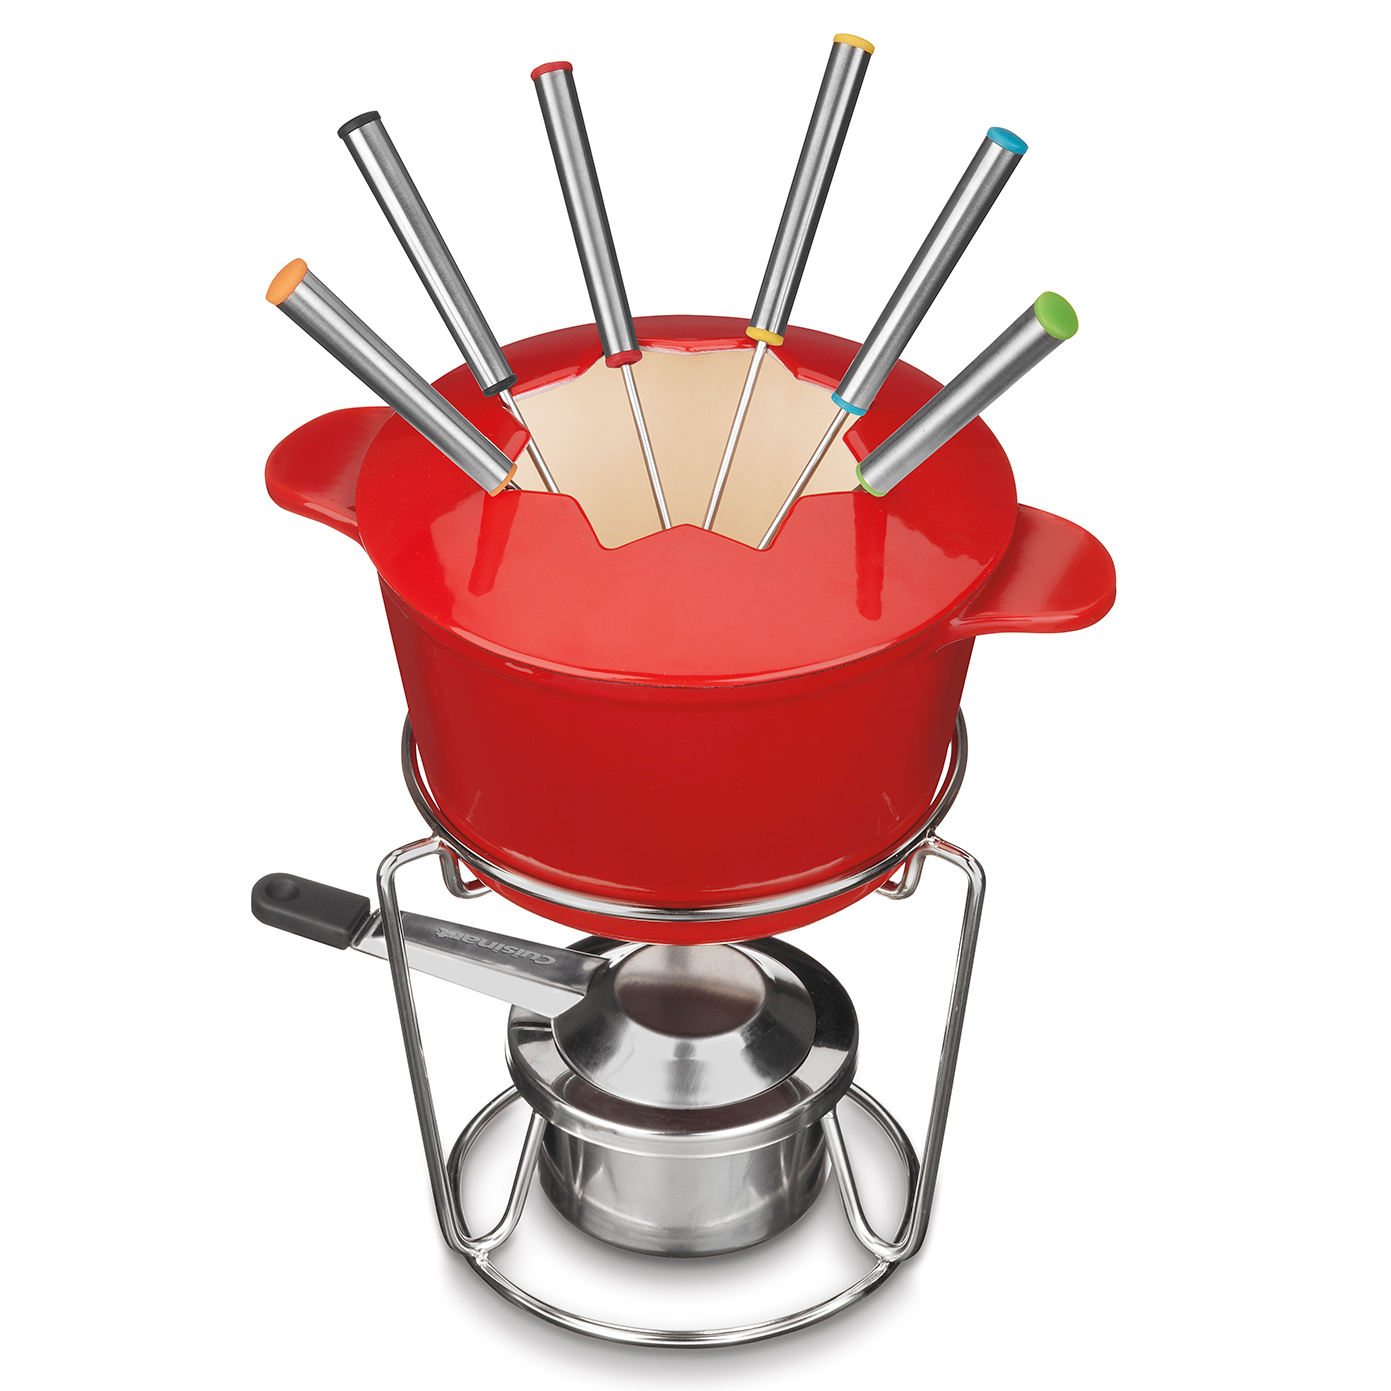 Enameled Cast Iron Cookware Fondue Set in red